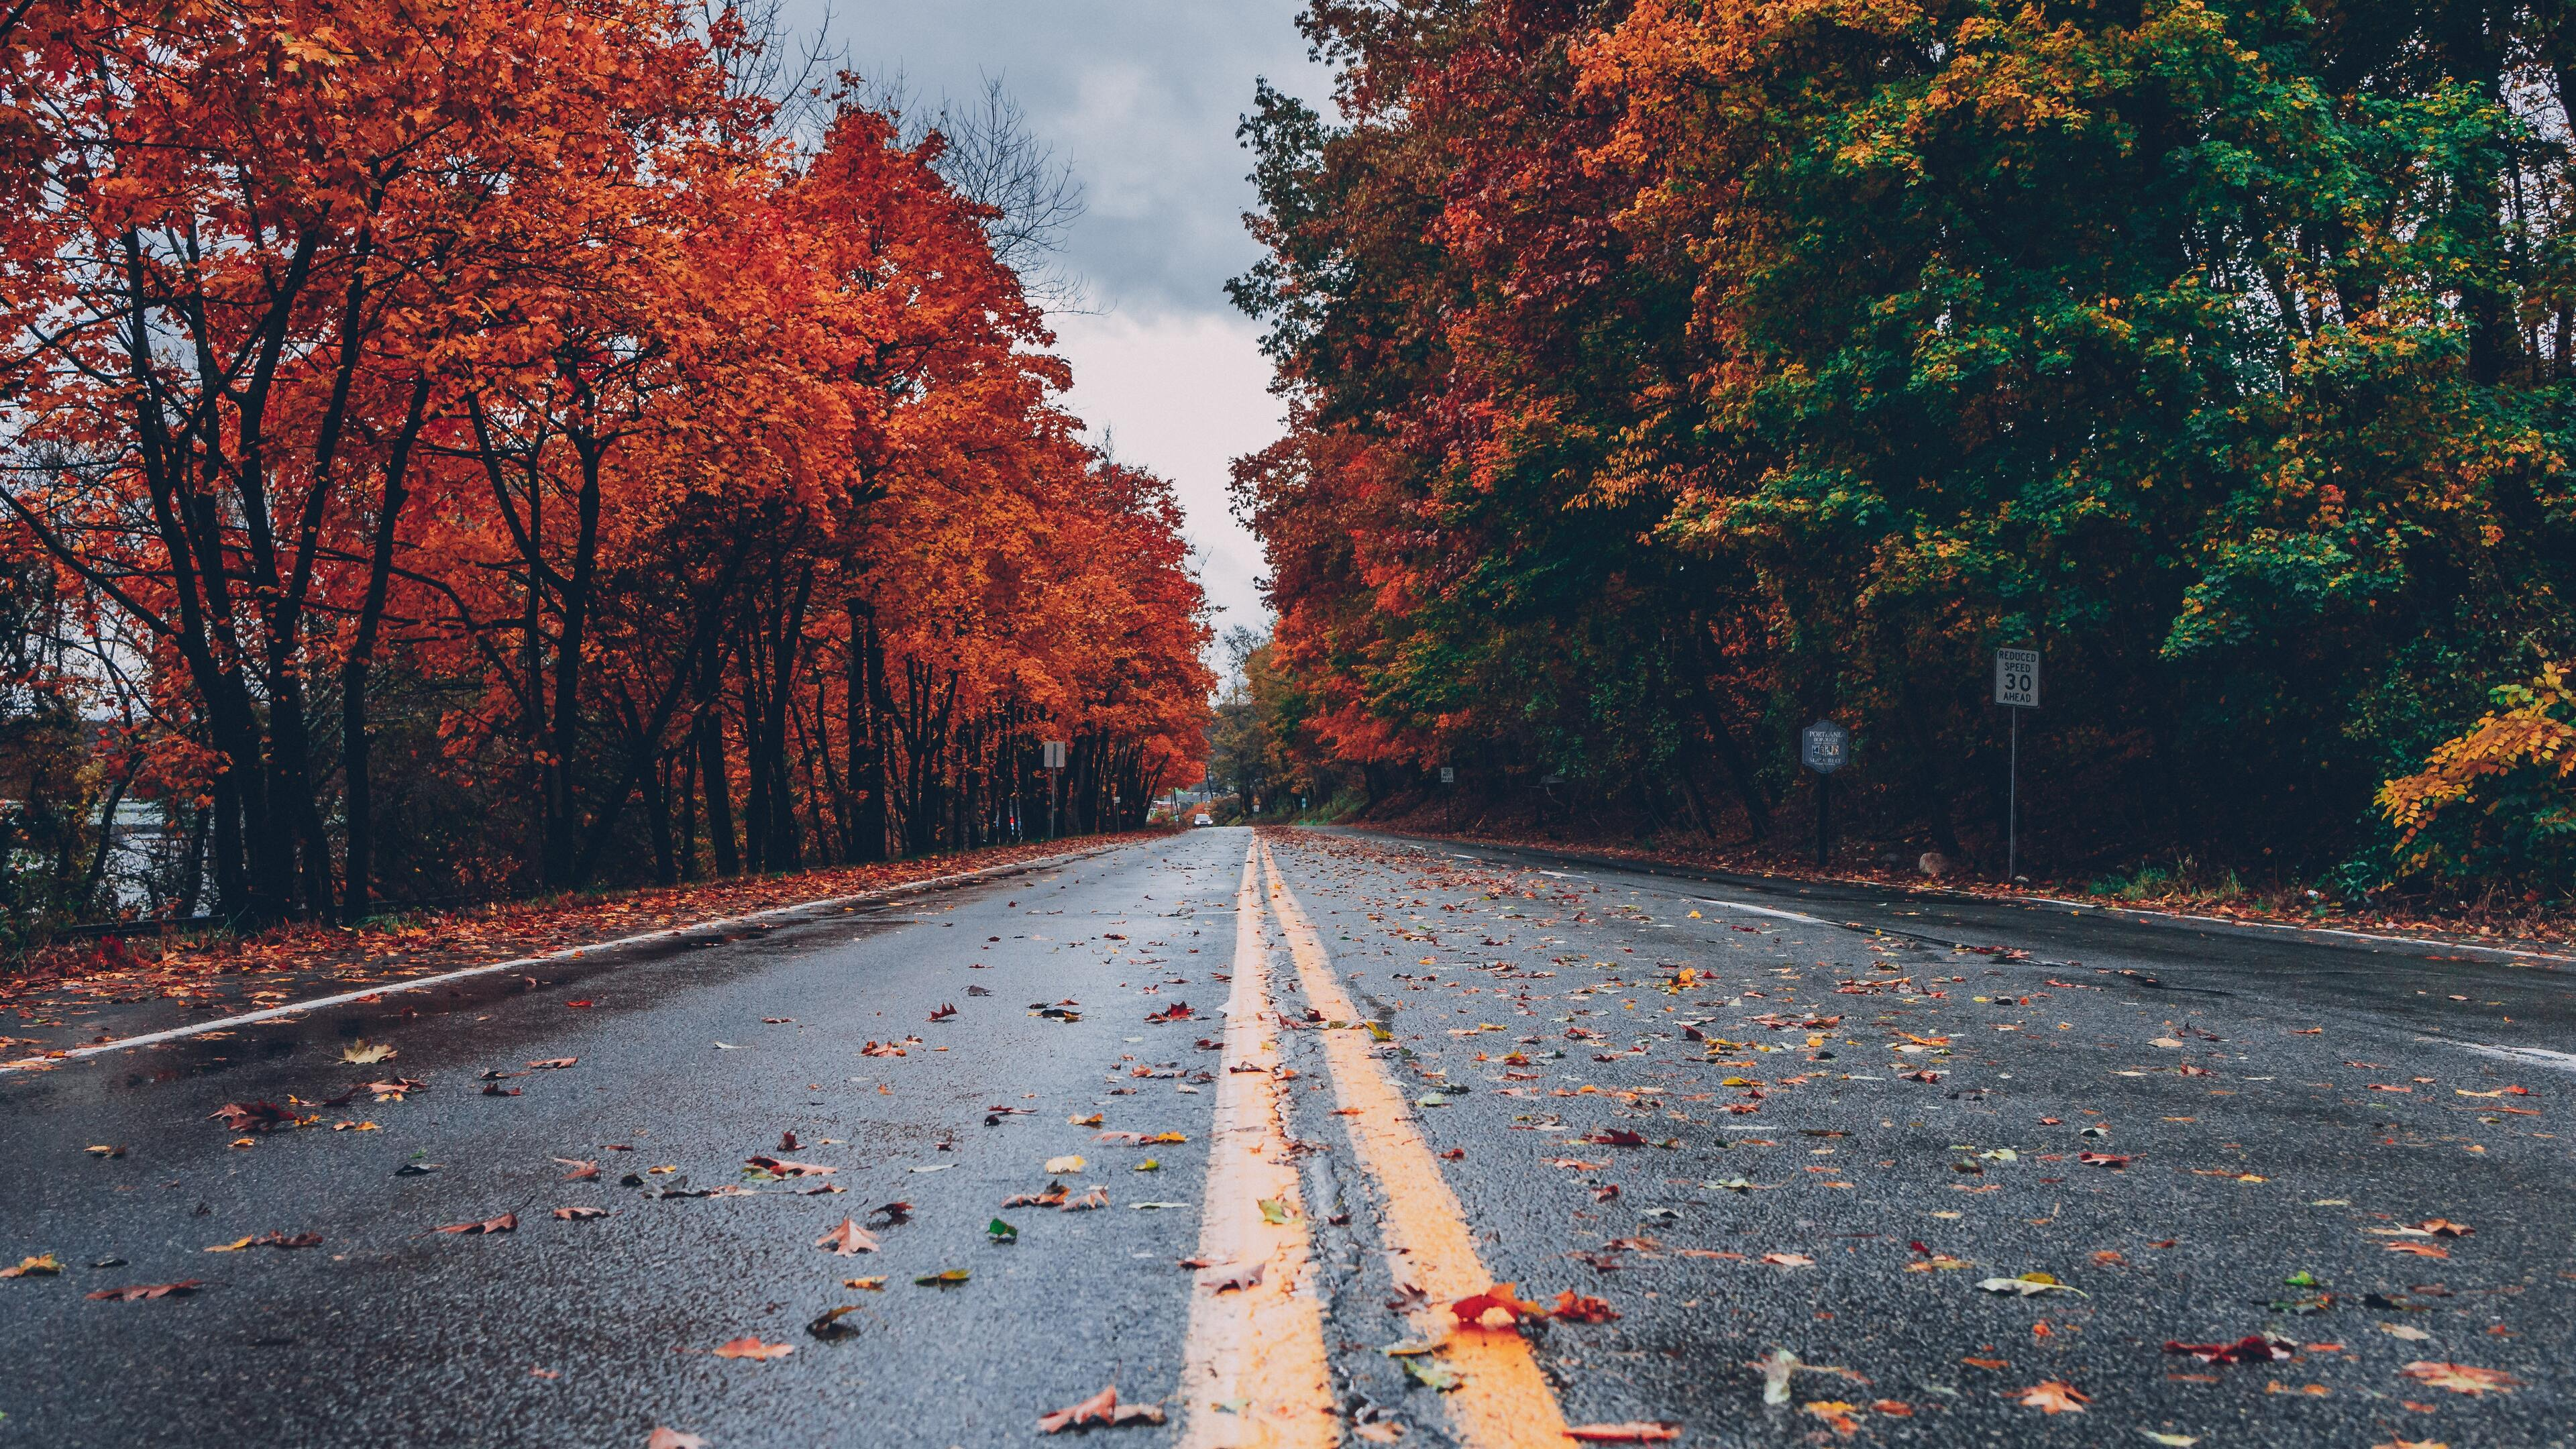 road-between-autumn-trees-5k-34.jpg